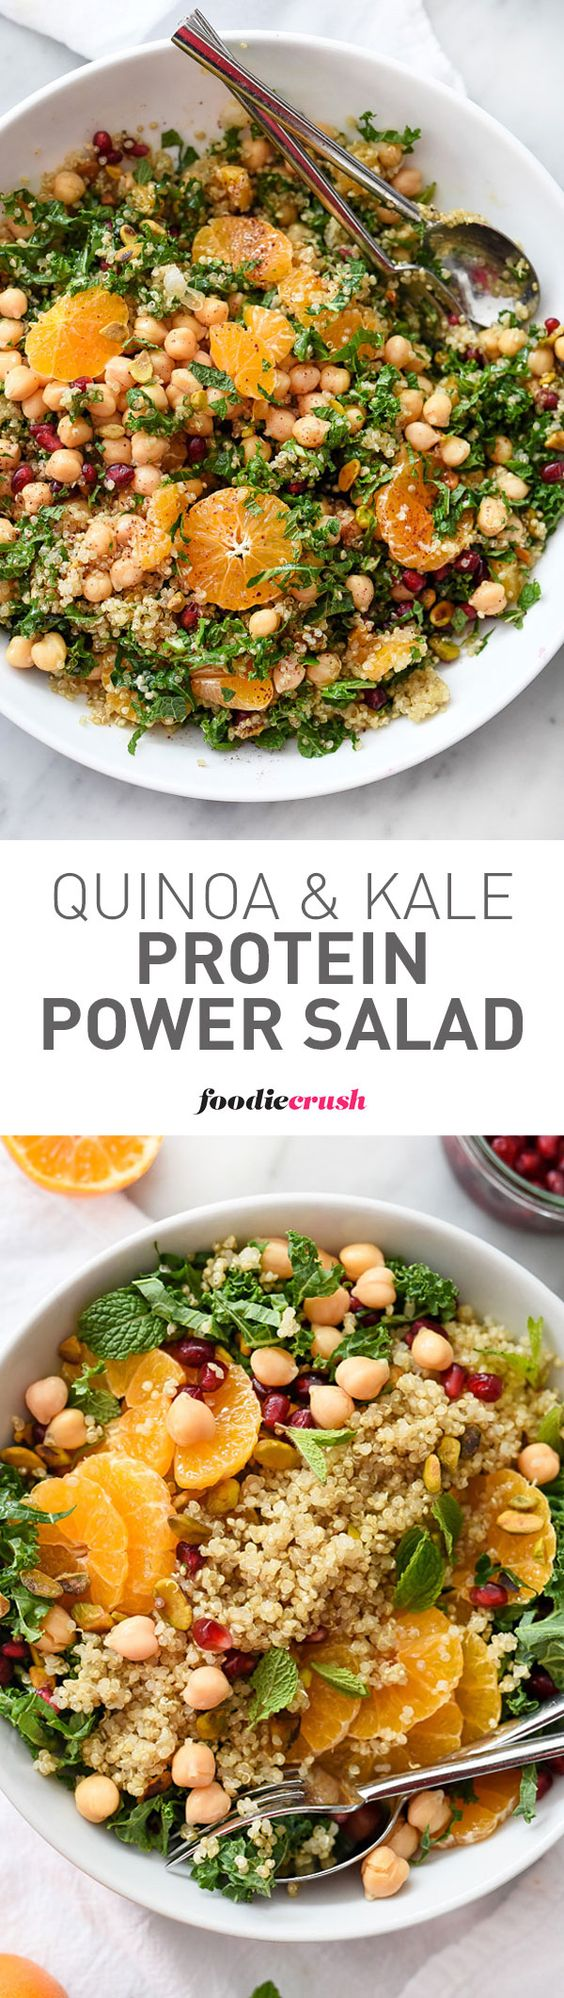 Quinoa, chickpeas (garbanzo beans) and pistachios add protein and ...